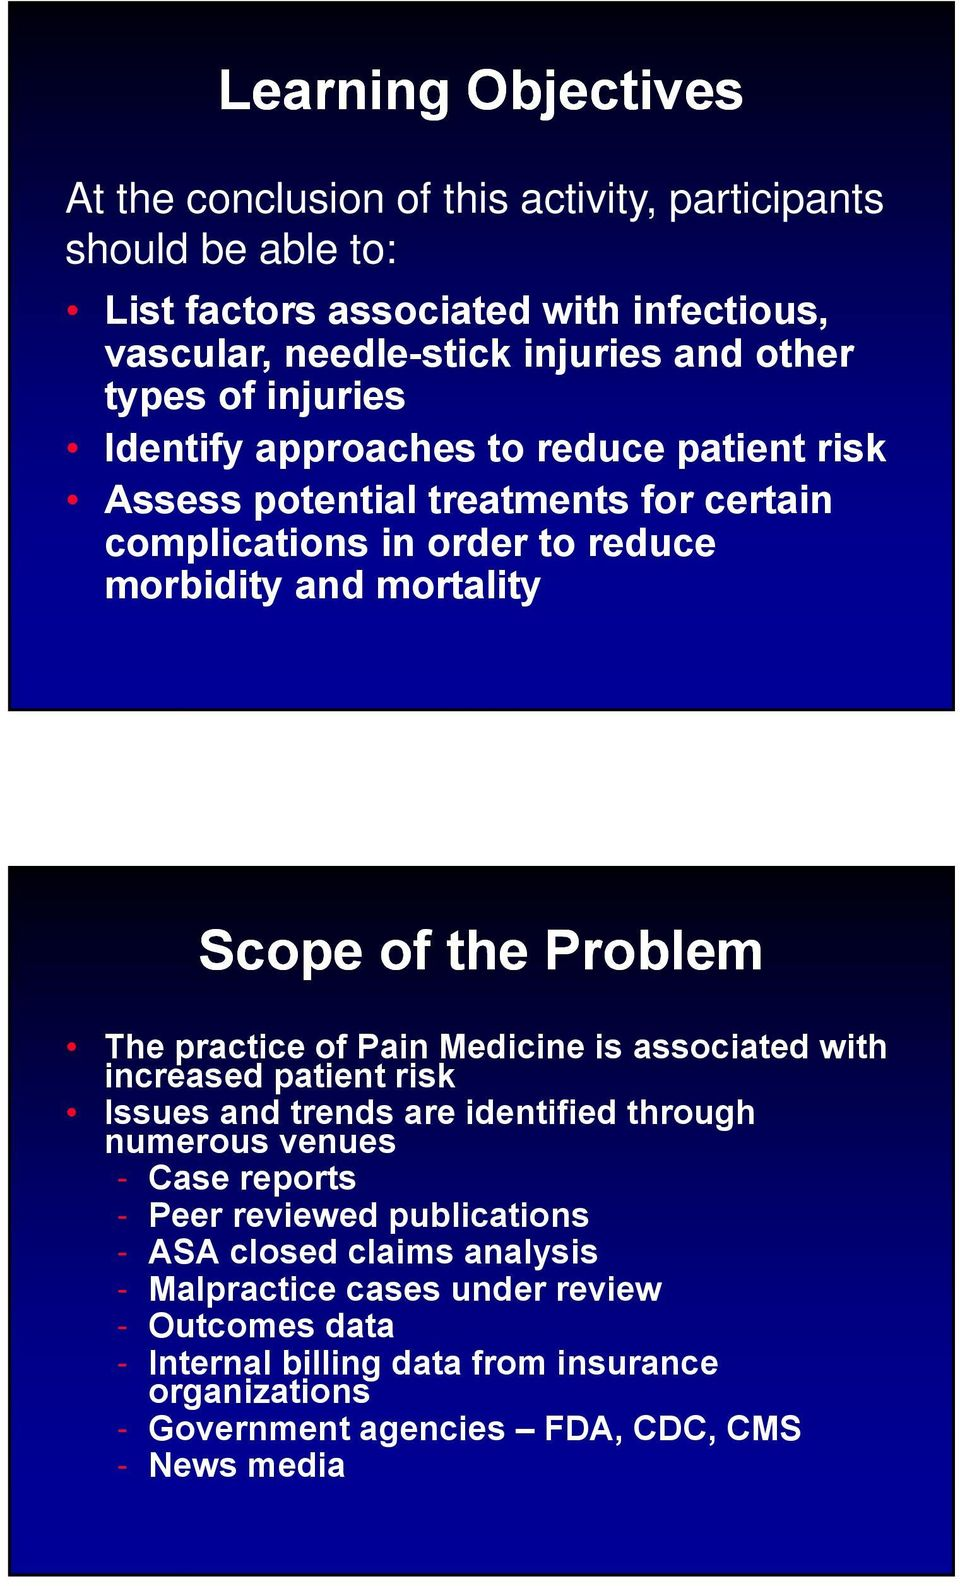 Problem The practice of Pain Medicine is associated with increased patient risk Issues and trends are identified through numerous venues - Case reports - Peer reviewed